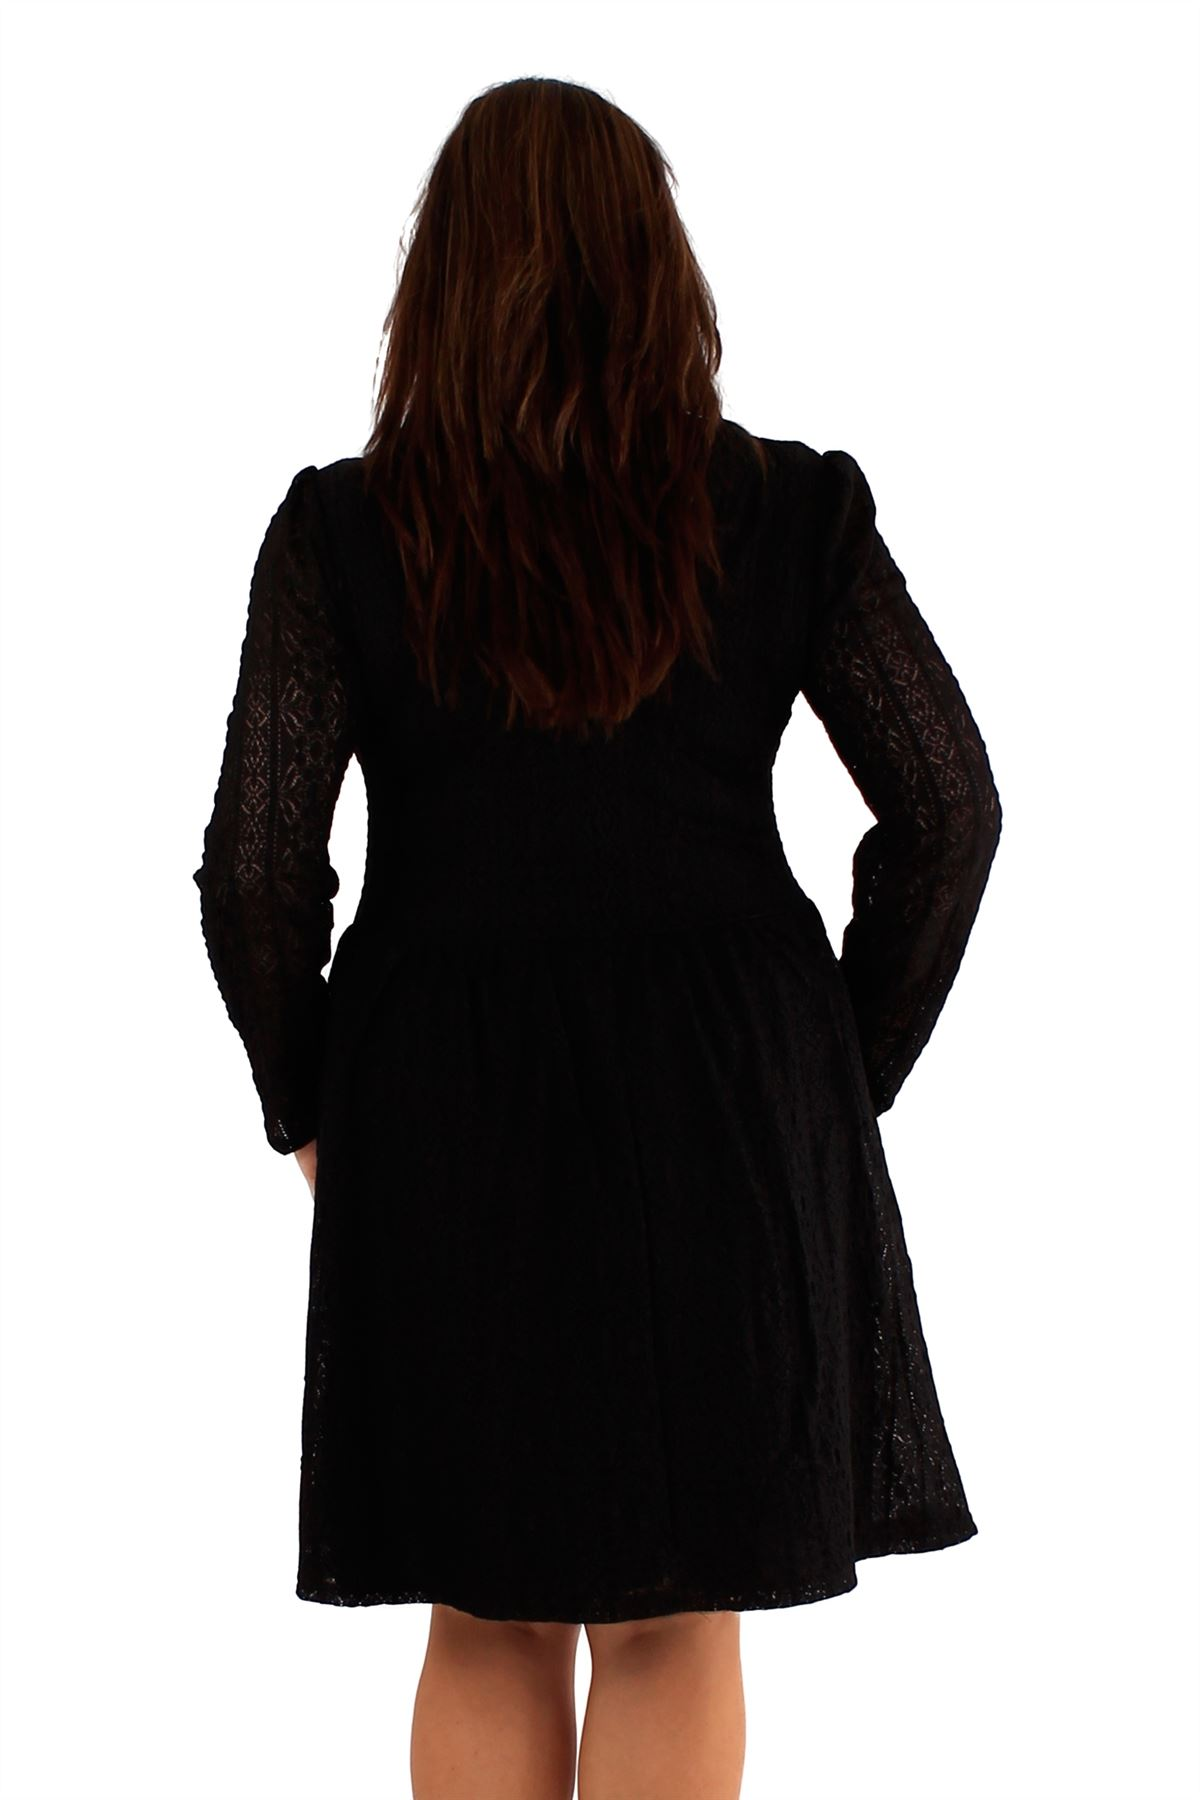 aa043826a17a New Womens plus size lace Lined Full Sleeve Party Skater Dress 18-24 ...